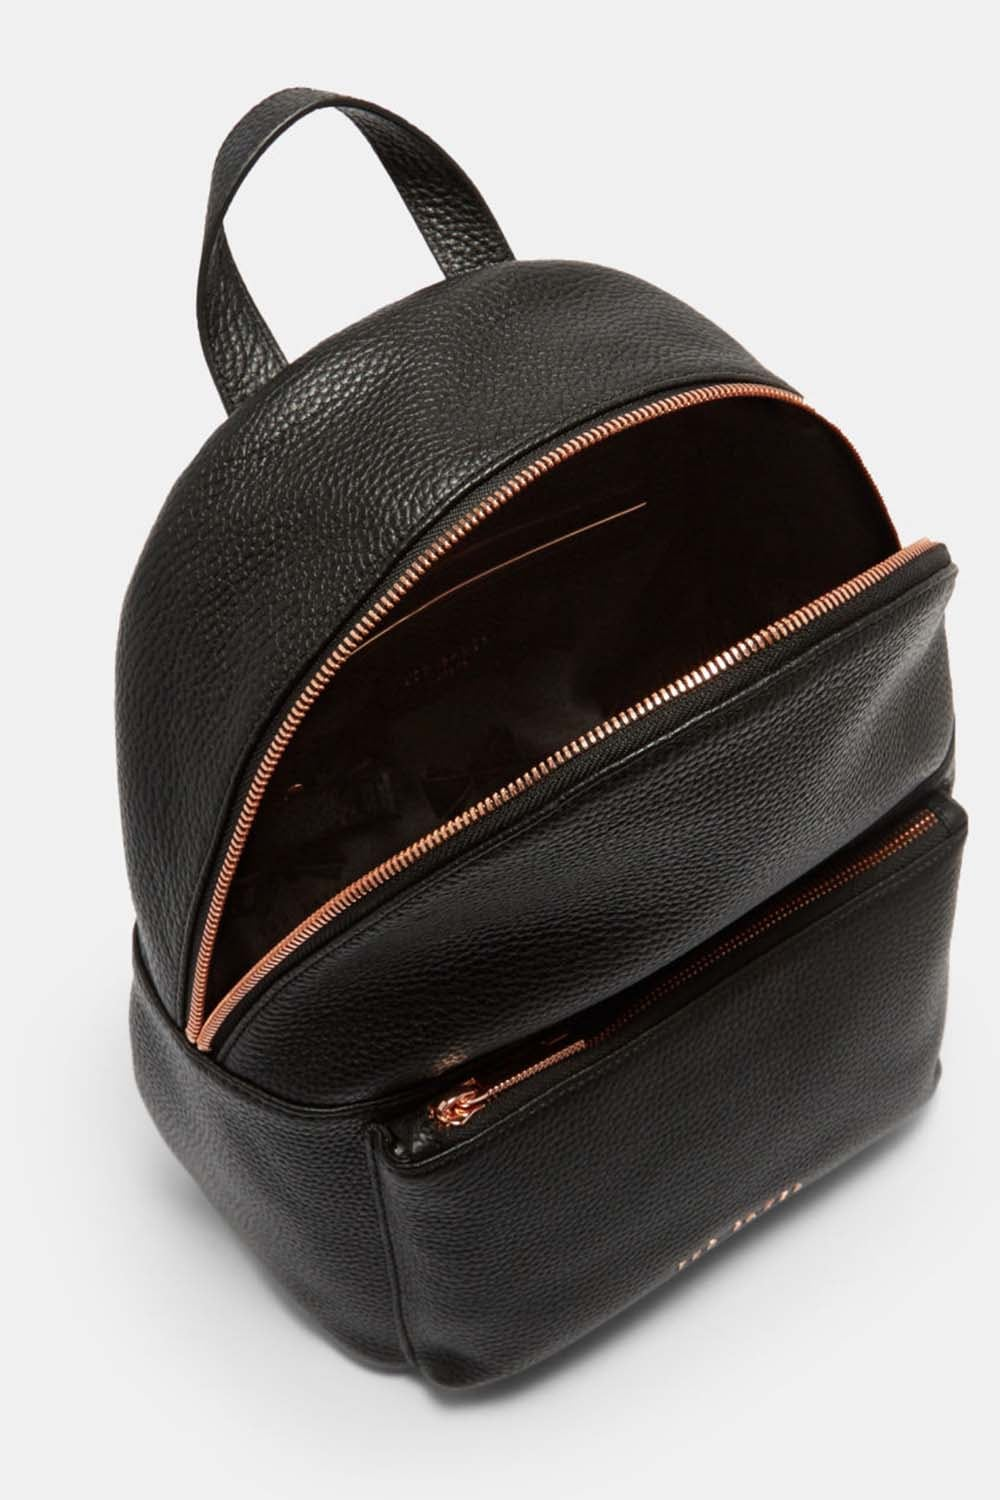 Square Backpack Ted Baker 014202